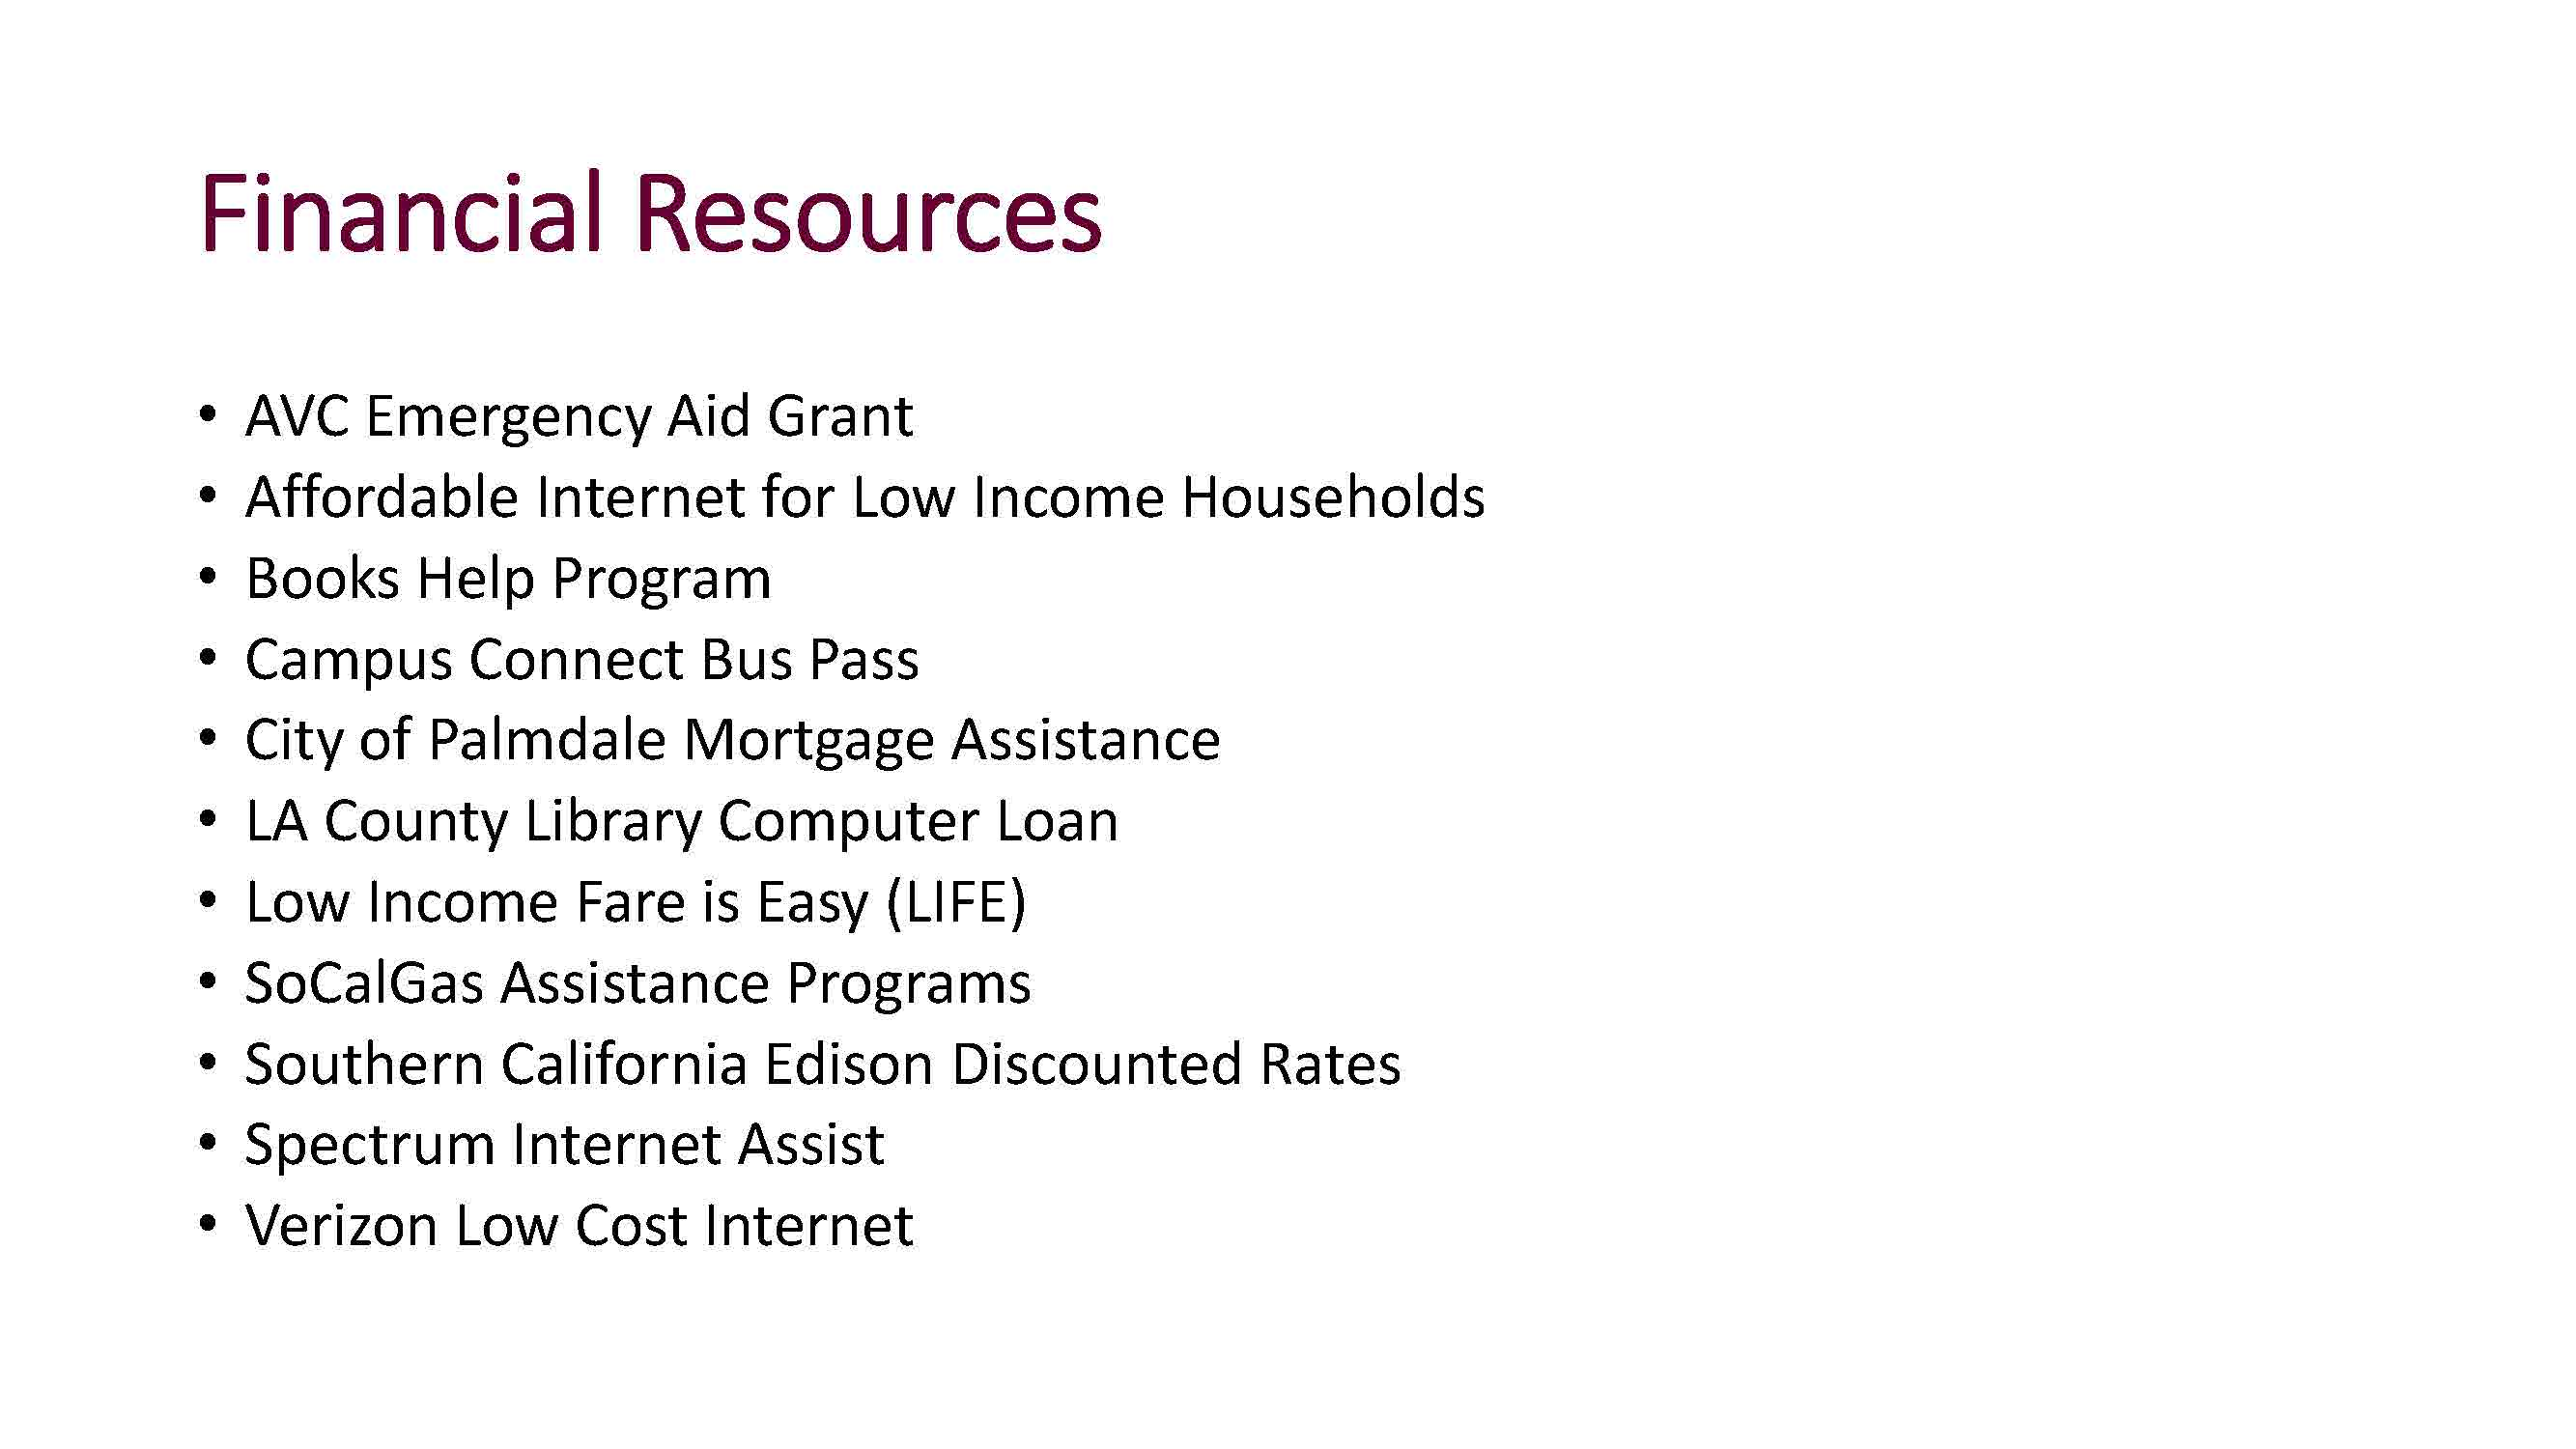 basic needs financial resources